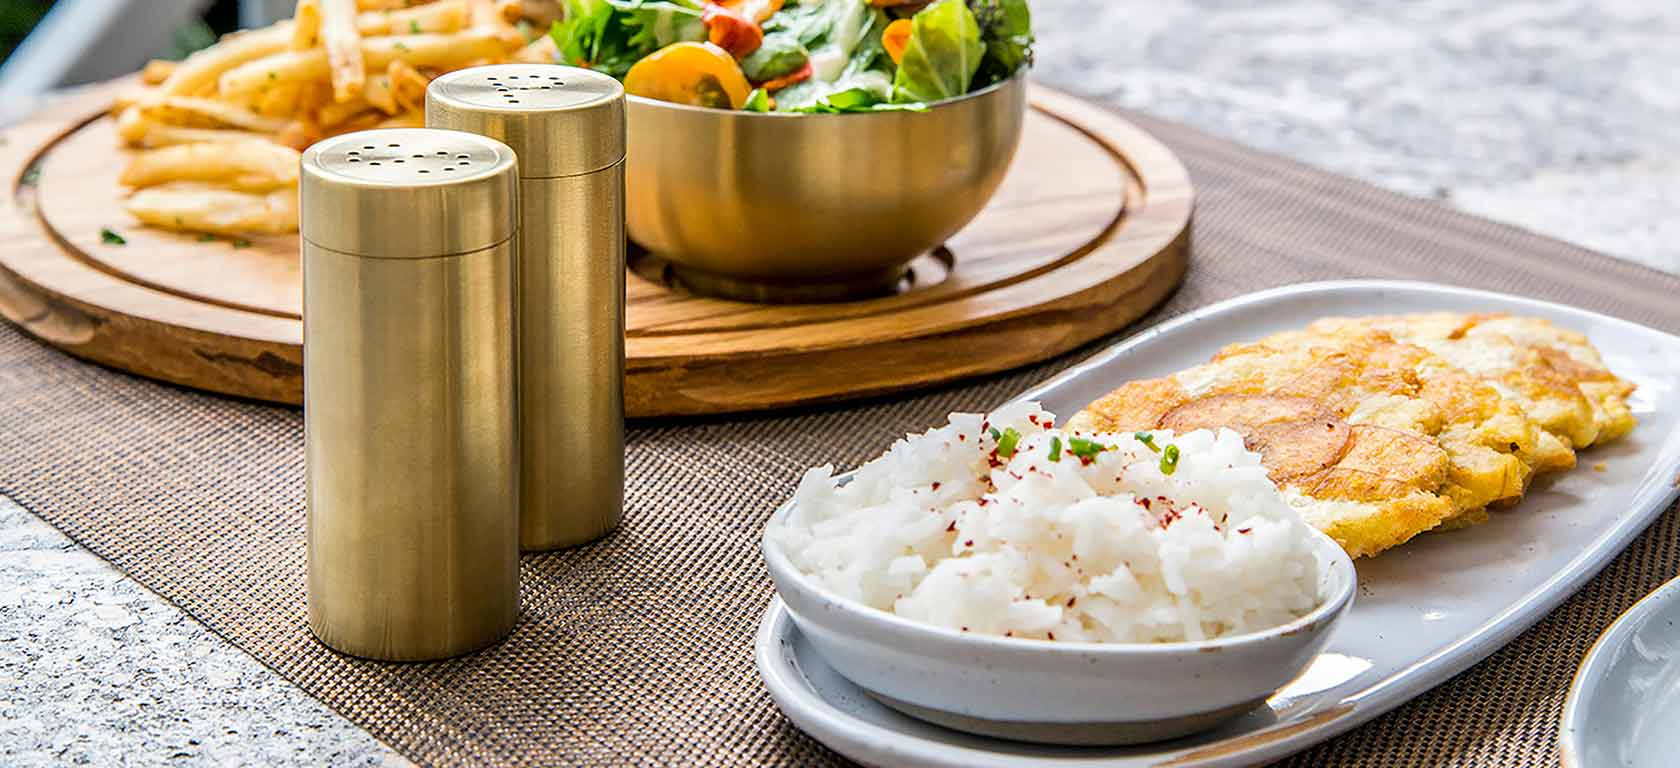 White round ceramic tableware on table accompanied by golden salt and pepper shakers